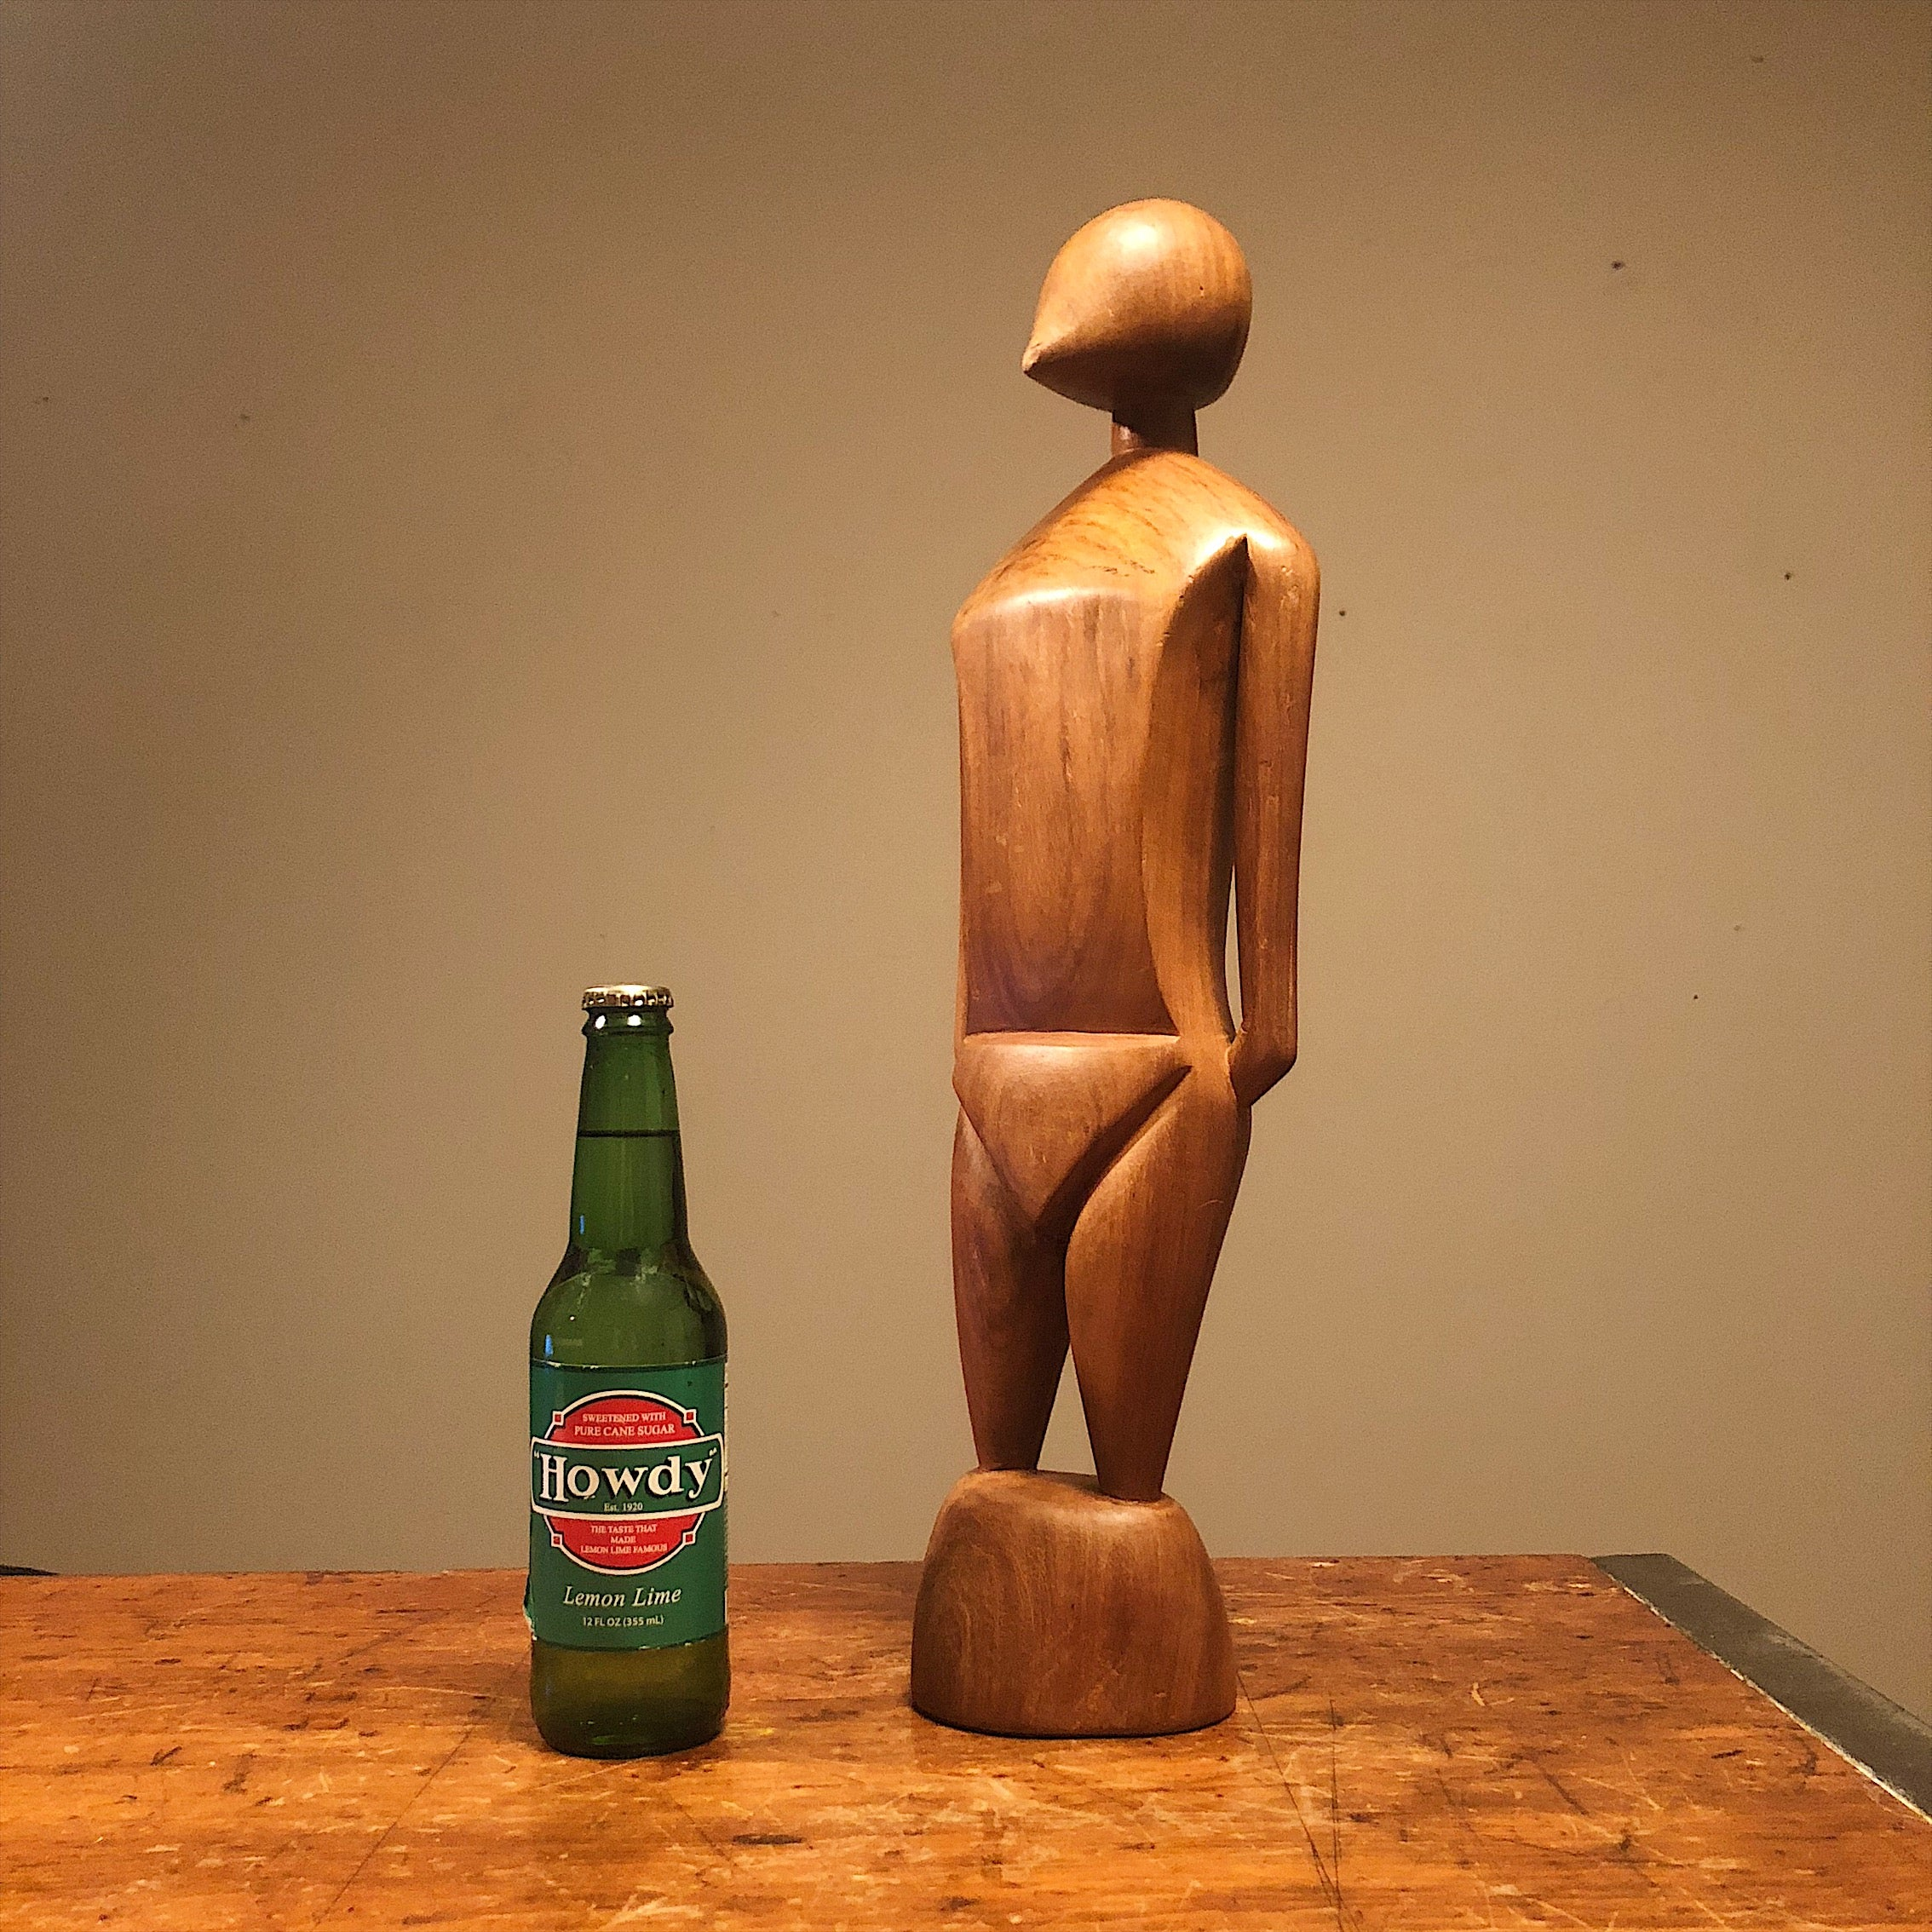 Proportions Unusual Mod Wood Sculpture of Human Form from 1950s